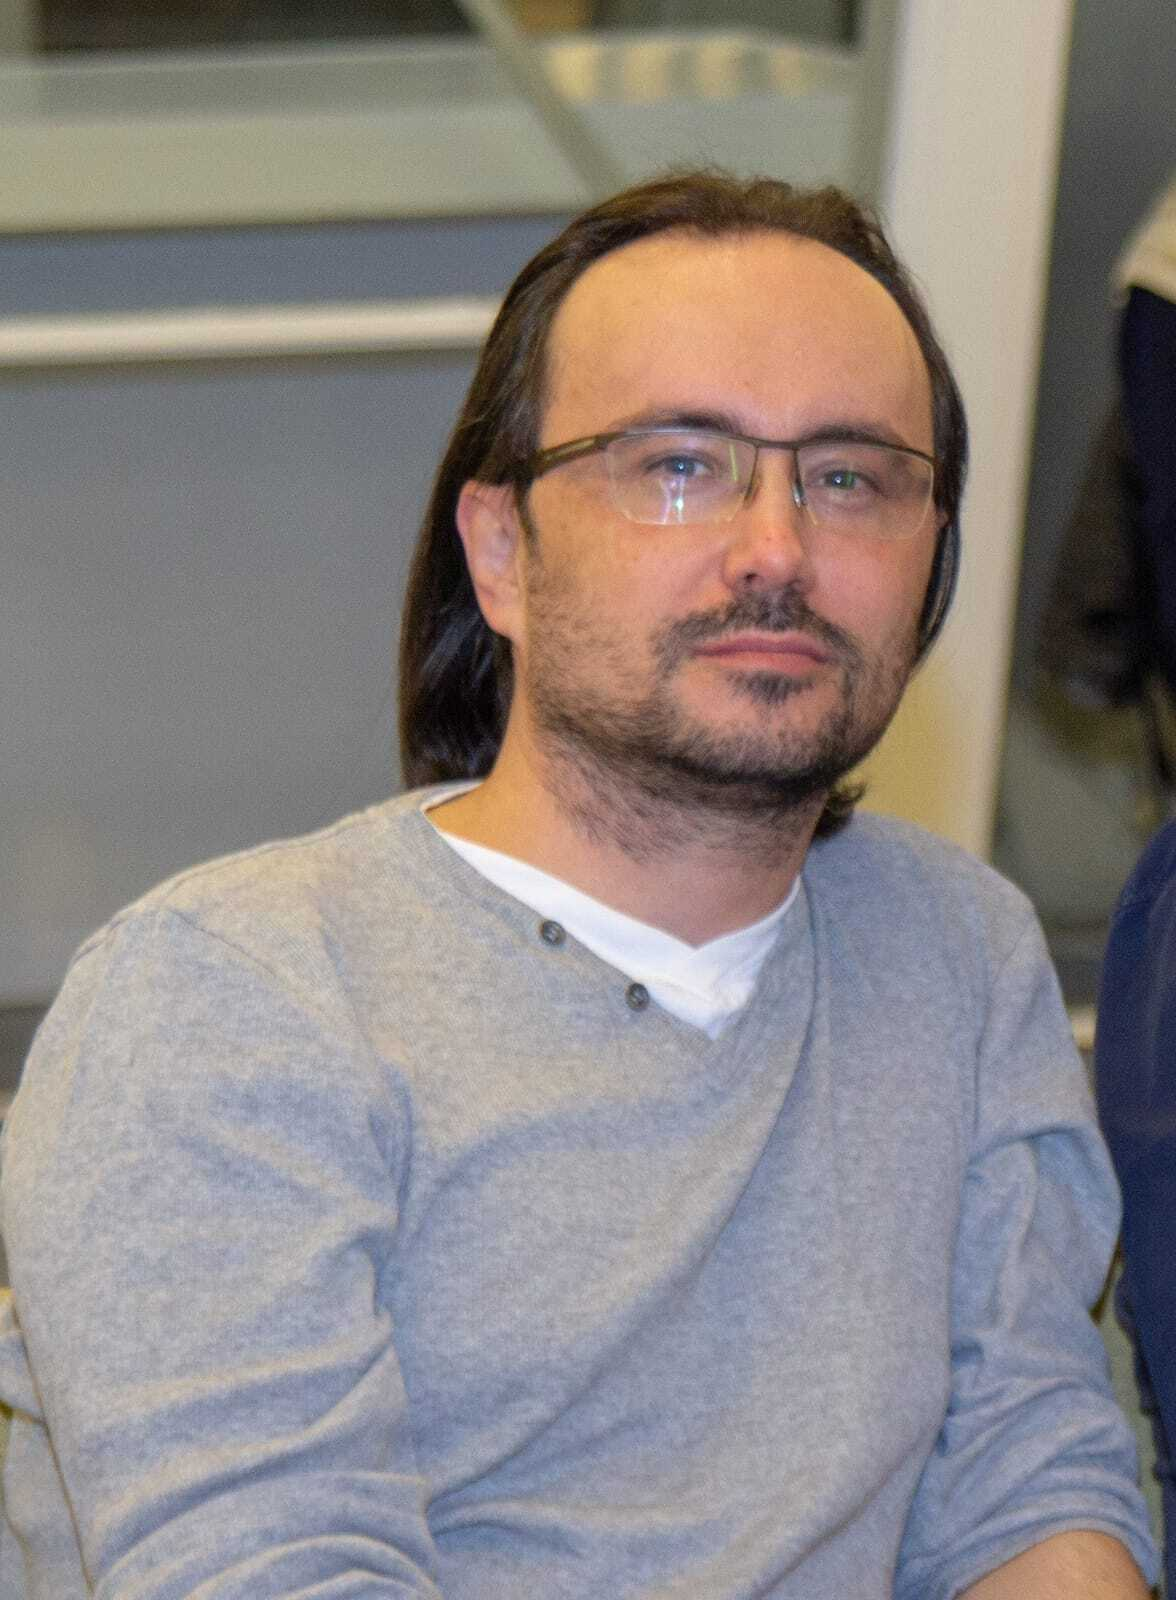 Dr. Oleg Komlik, Head of the Management and Human Resources Track at the College of Management's School of Behavioral Sciences Photo: Courtesy